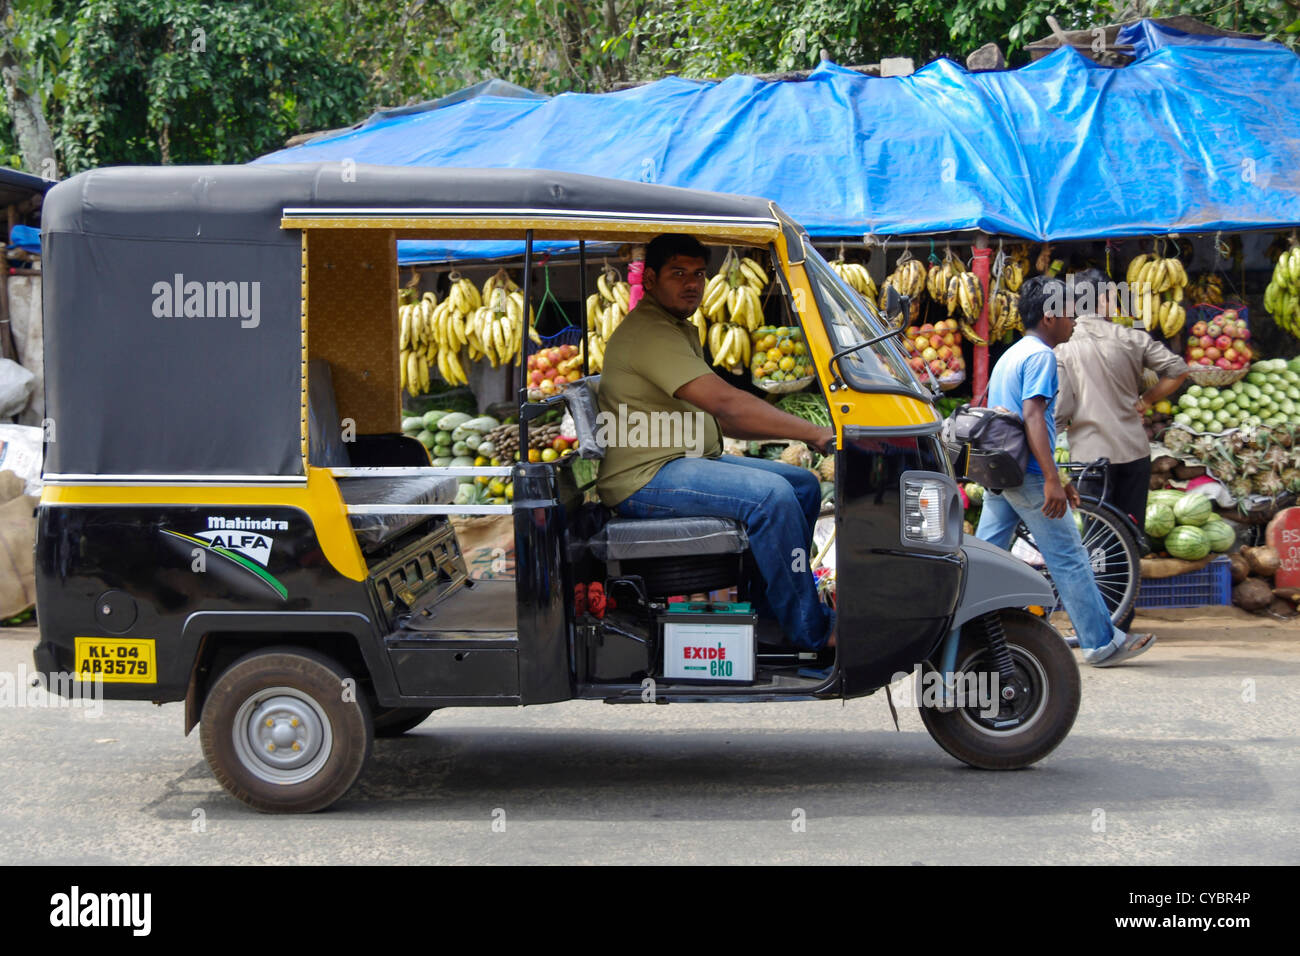 a tuk tuk taxi in kerala india stock photo royalty free image 51276086 alamy. Black Bedroom Furniture Sets. Home Design Ideas